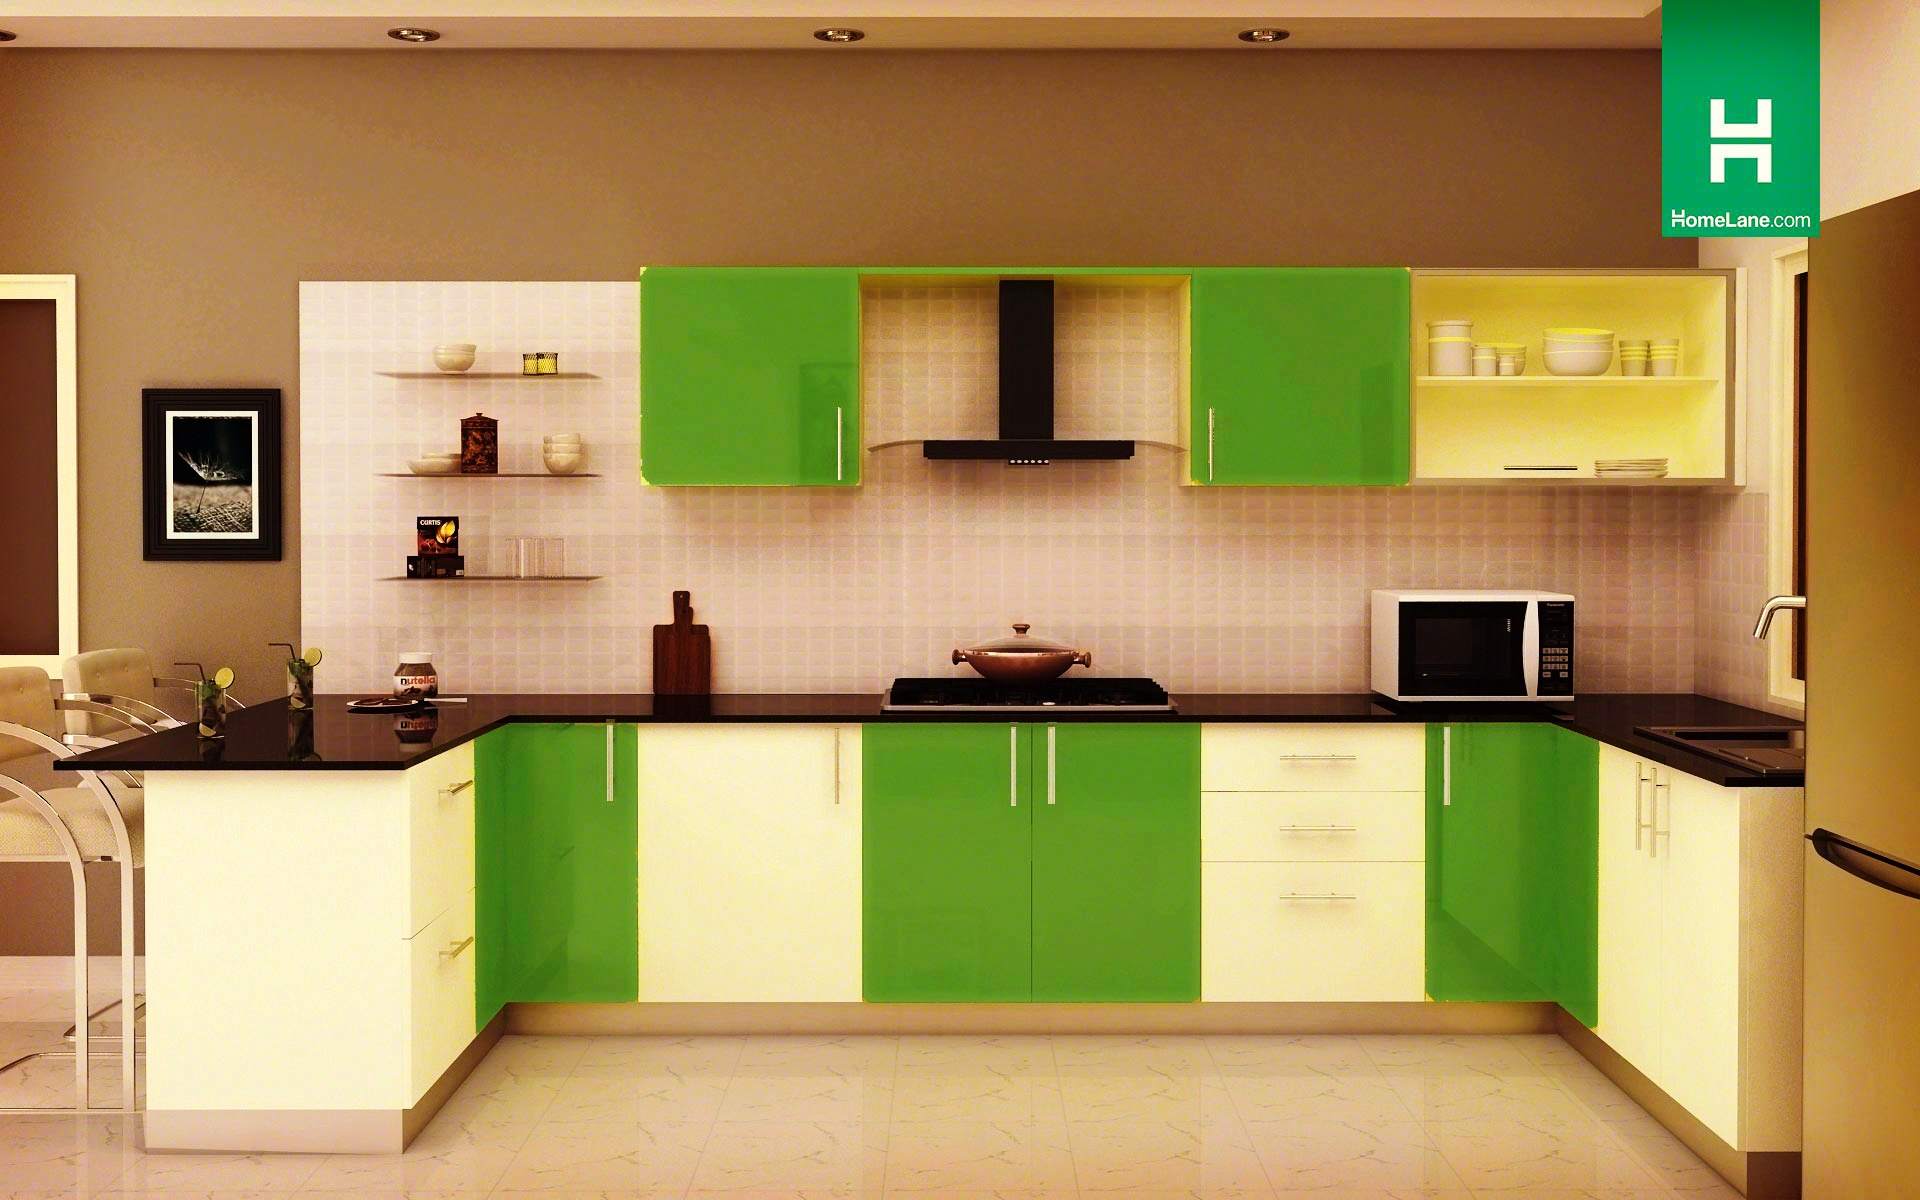 Modular kitchen – have one for yourself